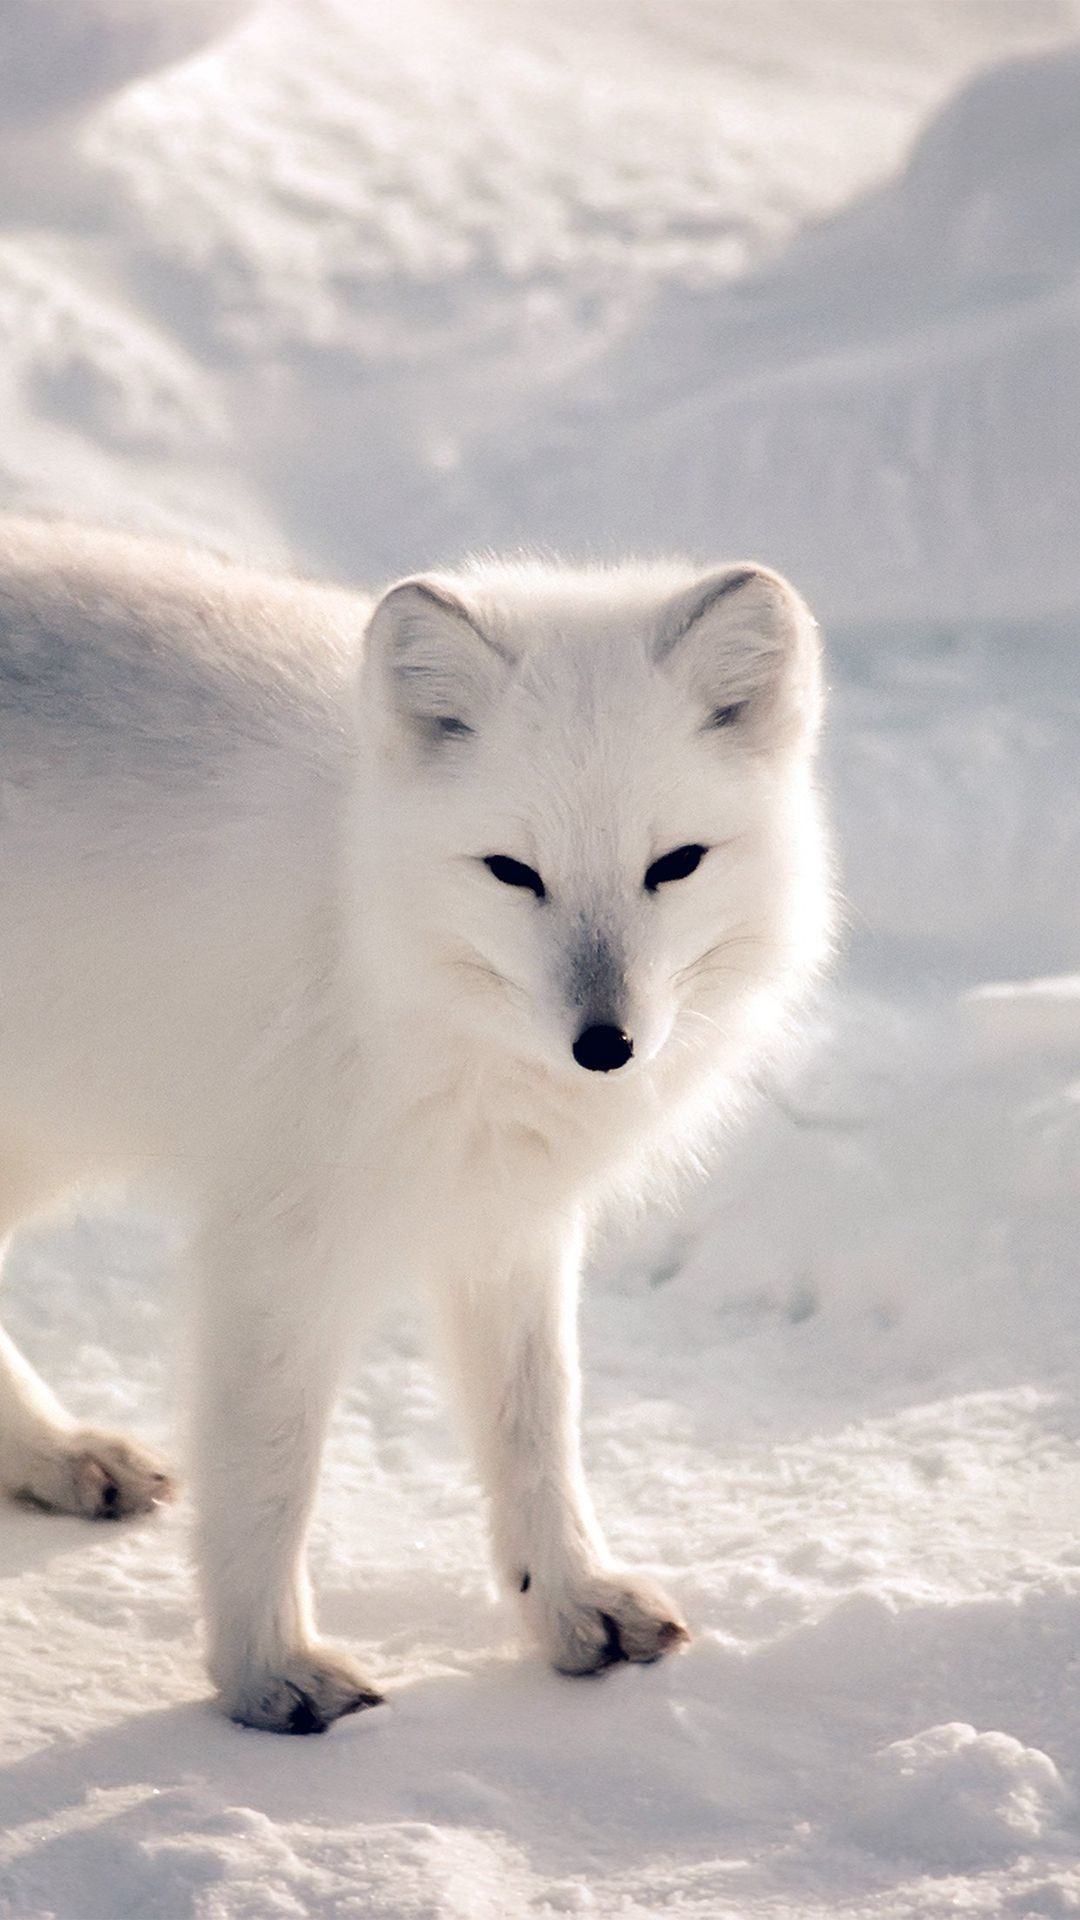 Res: 1080x1920, White Artic Fox Snow Winter Animal iPhone 6 wallpaper